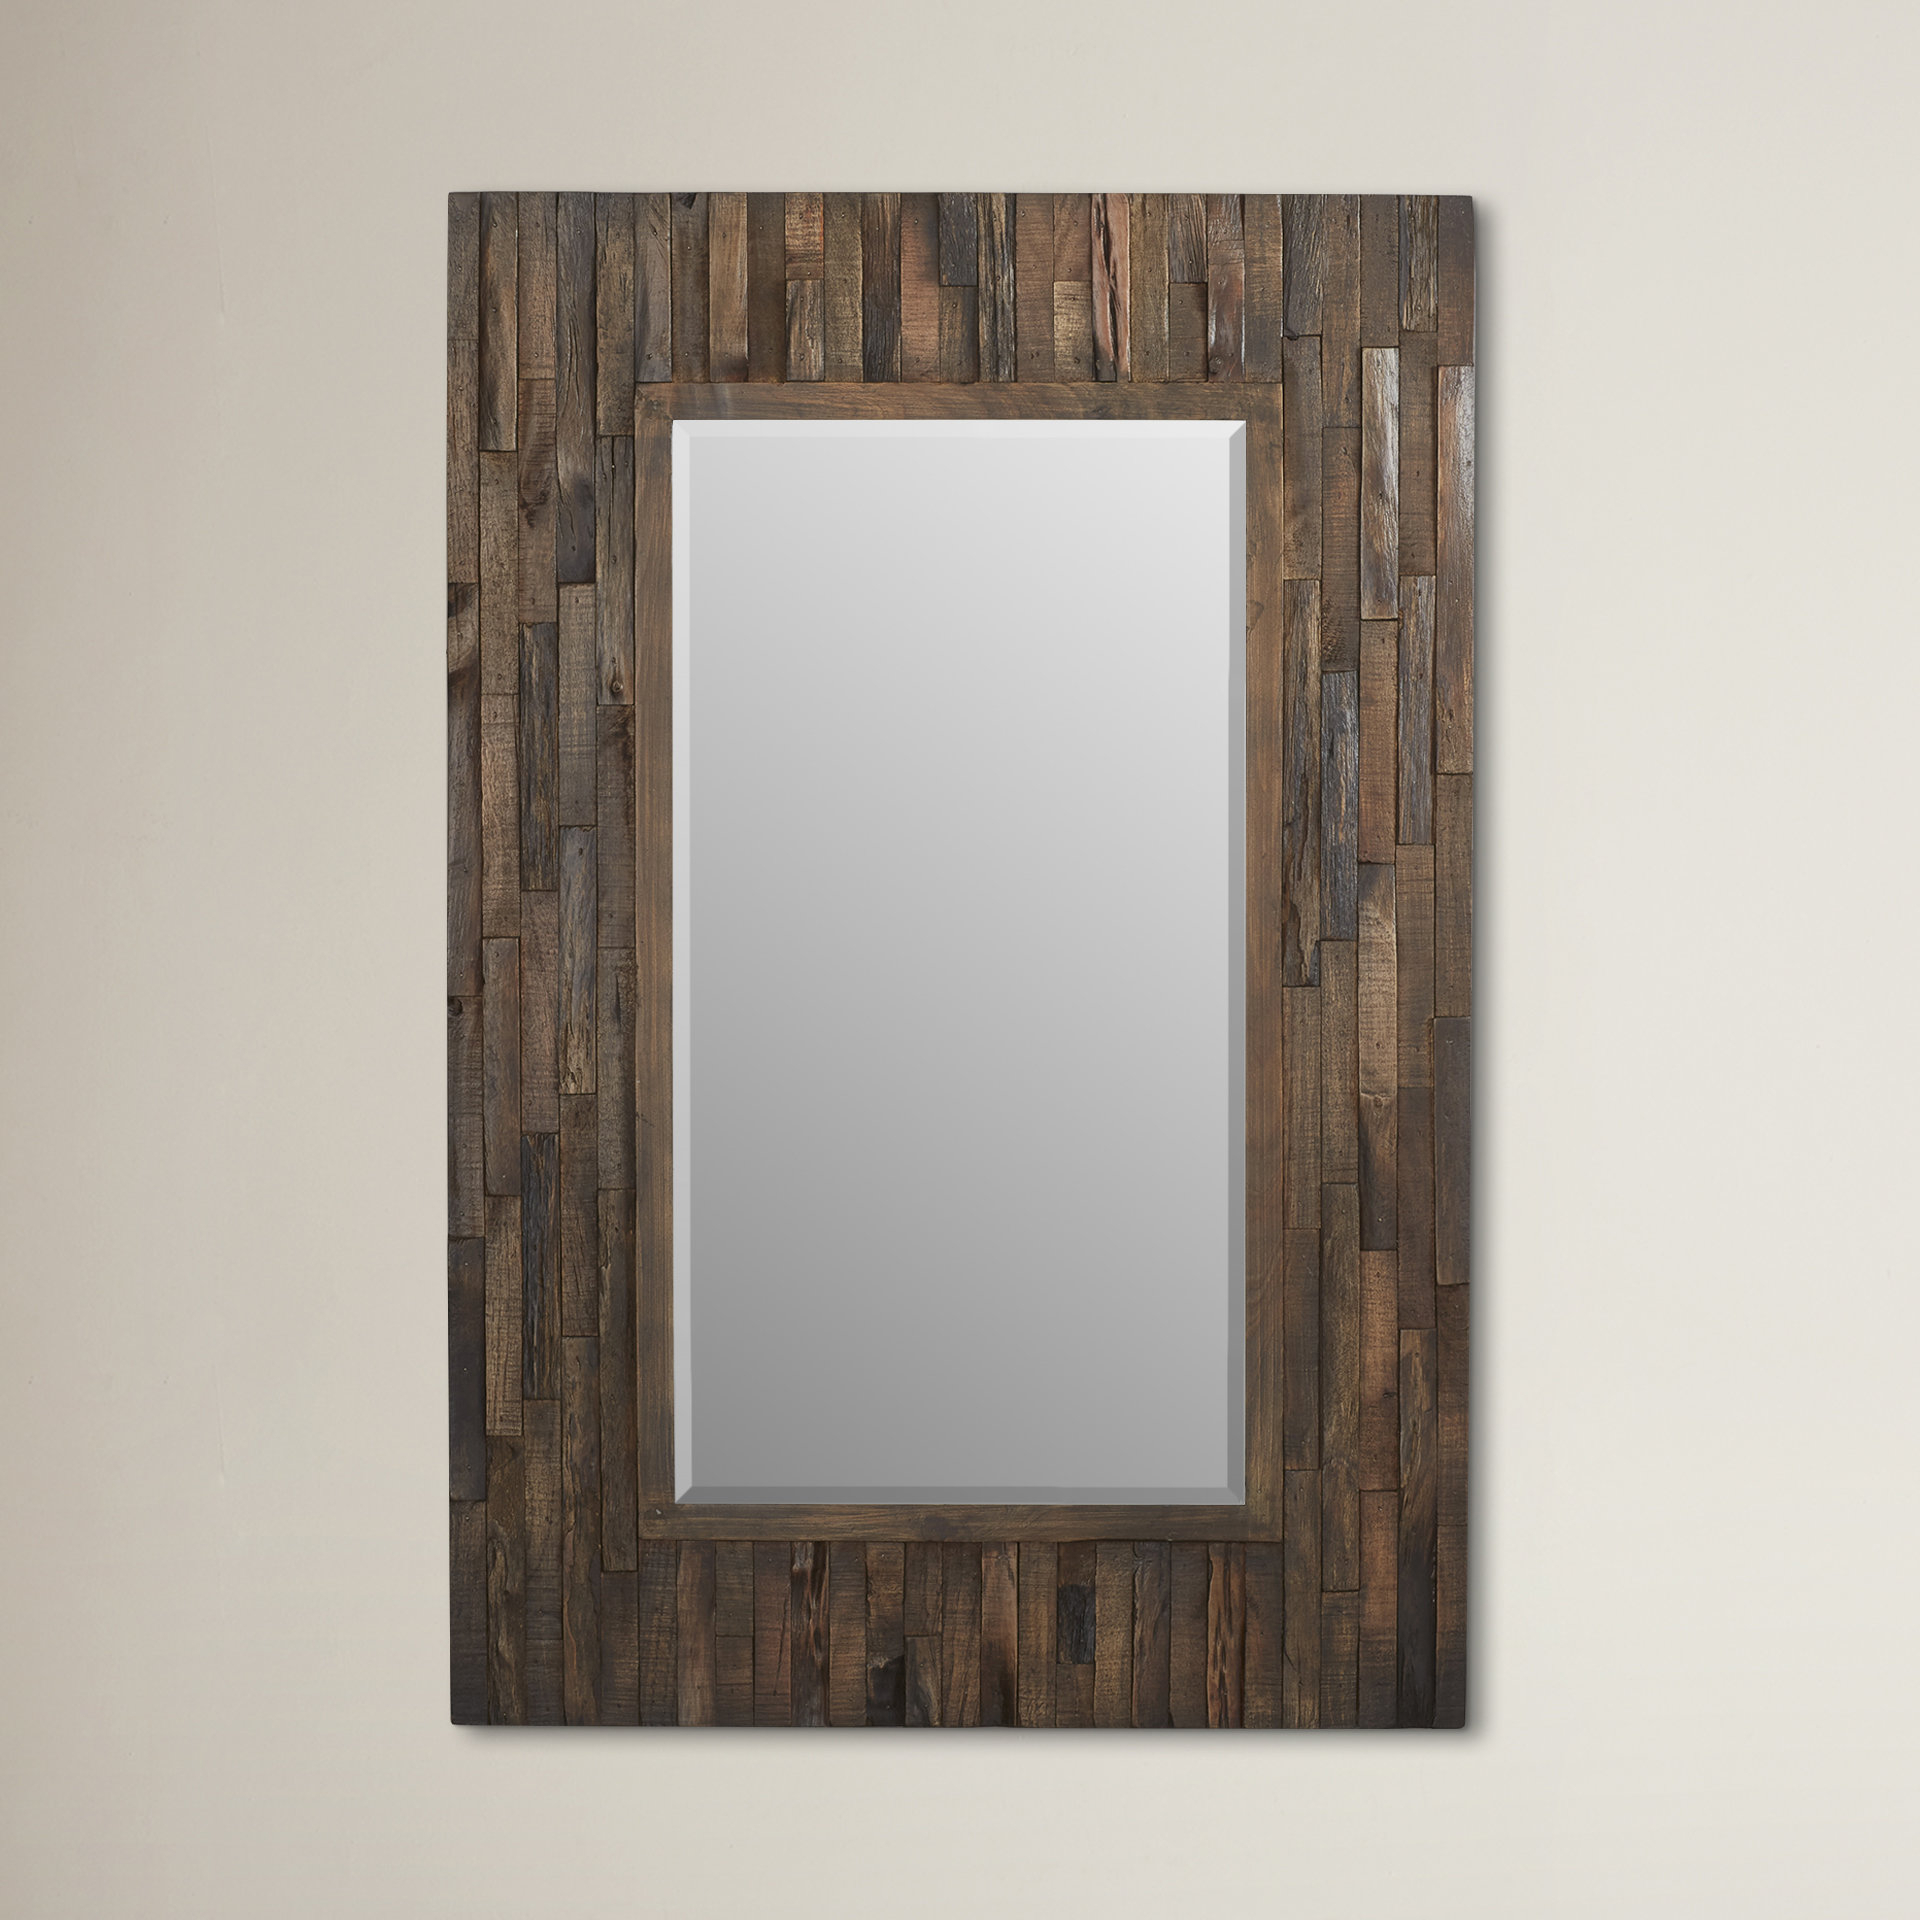 Farmhouse & Rustic Loon Peak Wall & Accent Mirrors | Birch Lane Throughout Cromartie Tree Branch Wall Mirrors (Image 8 of 20)